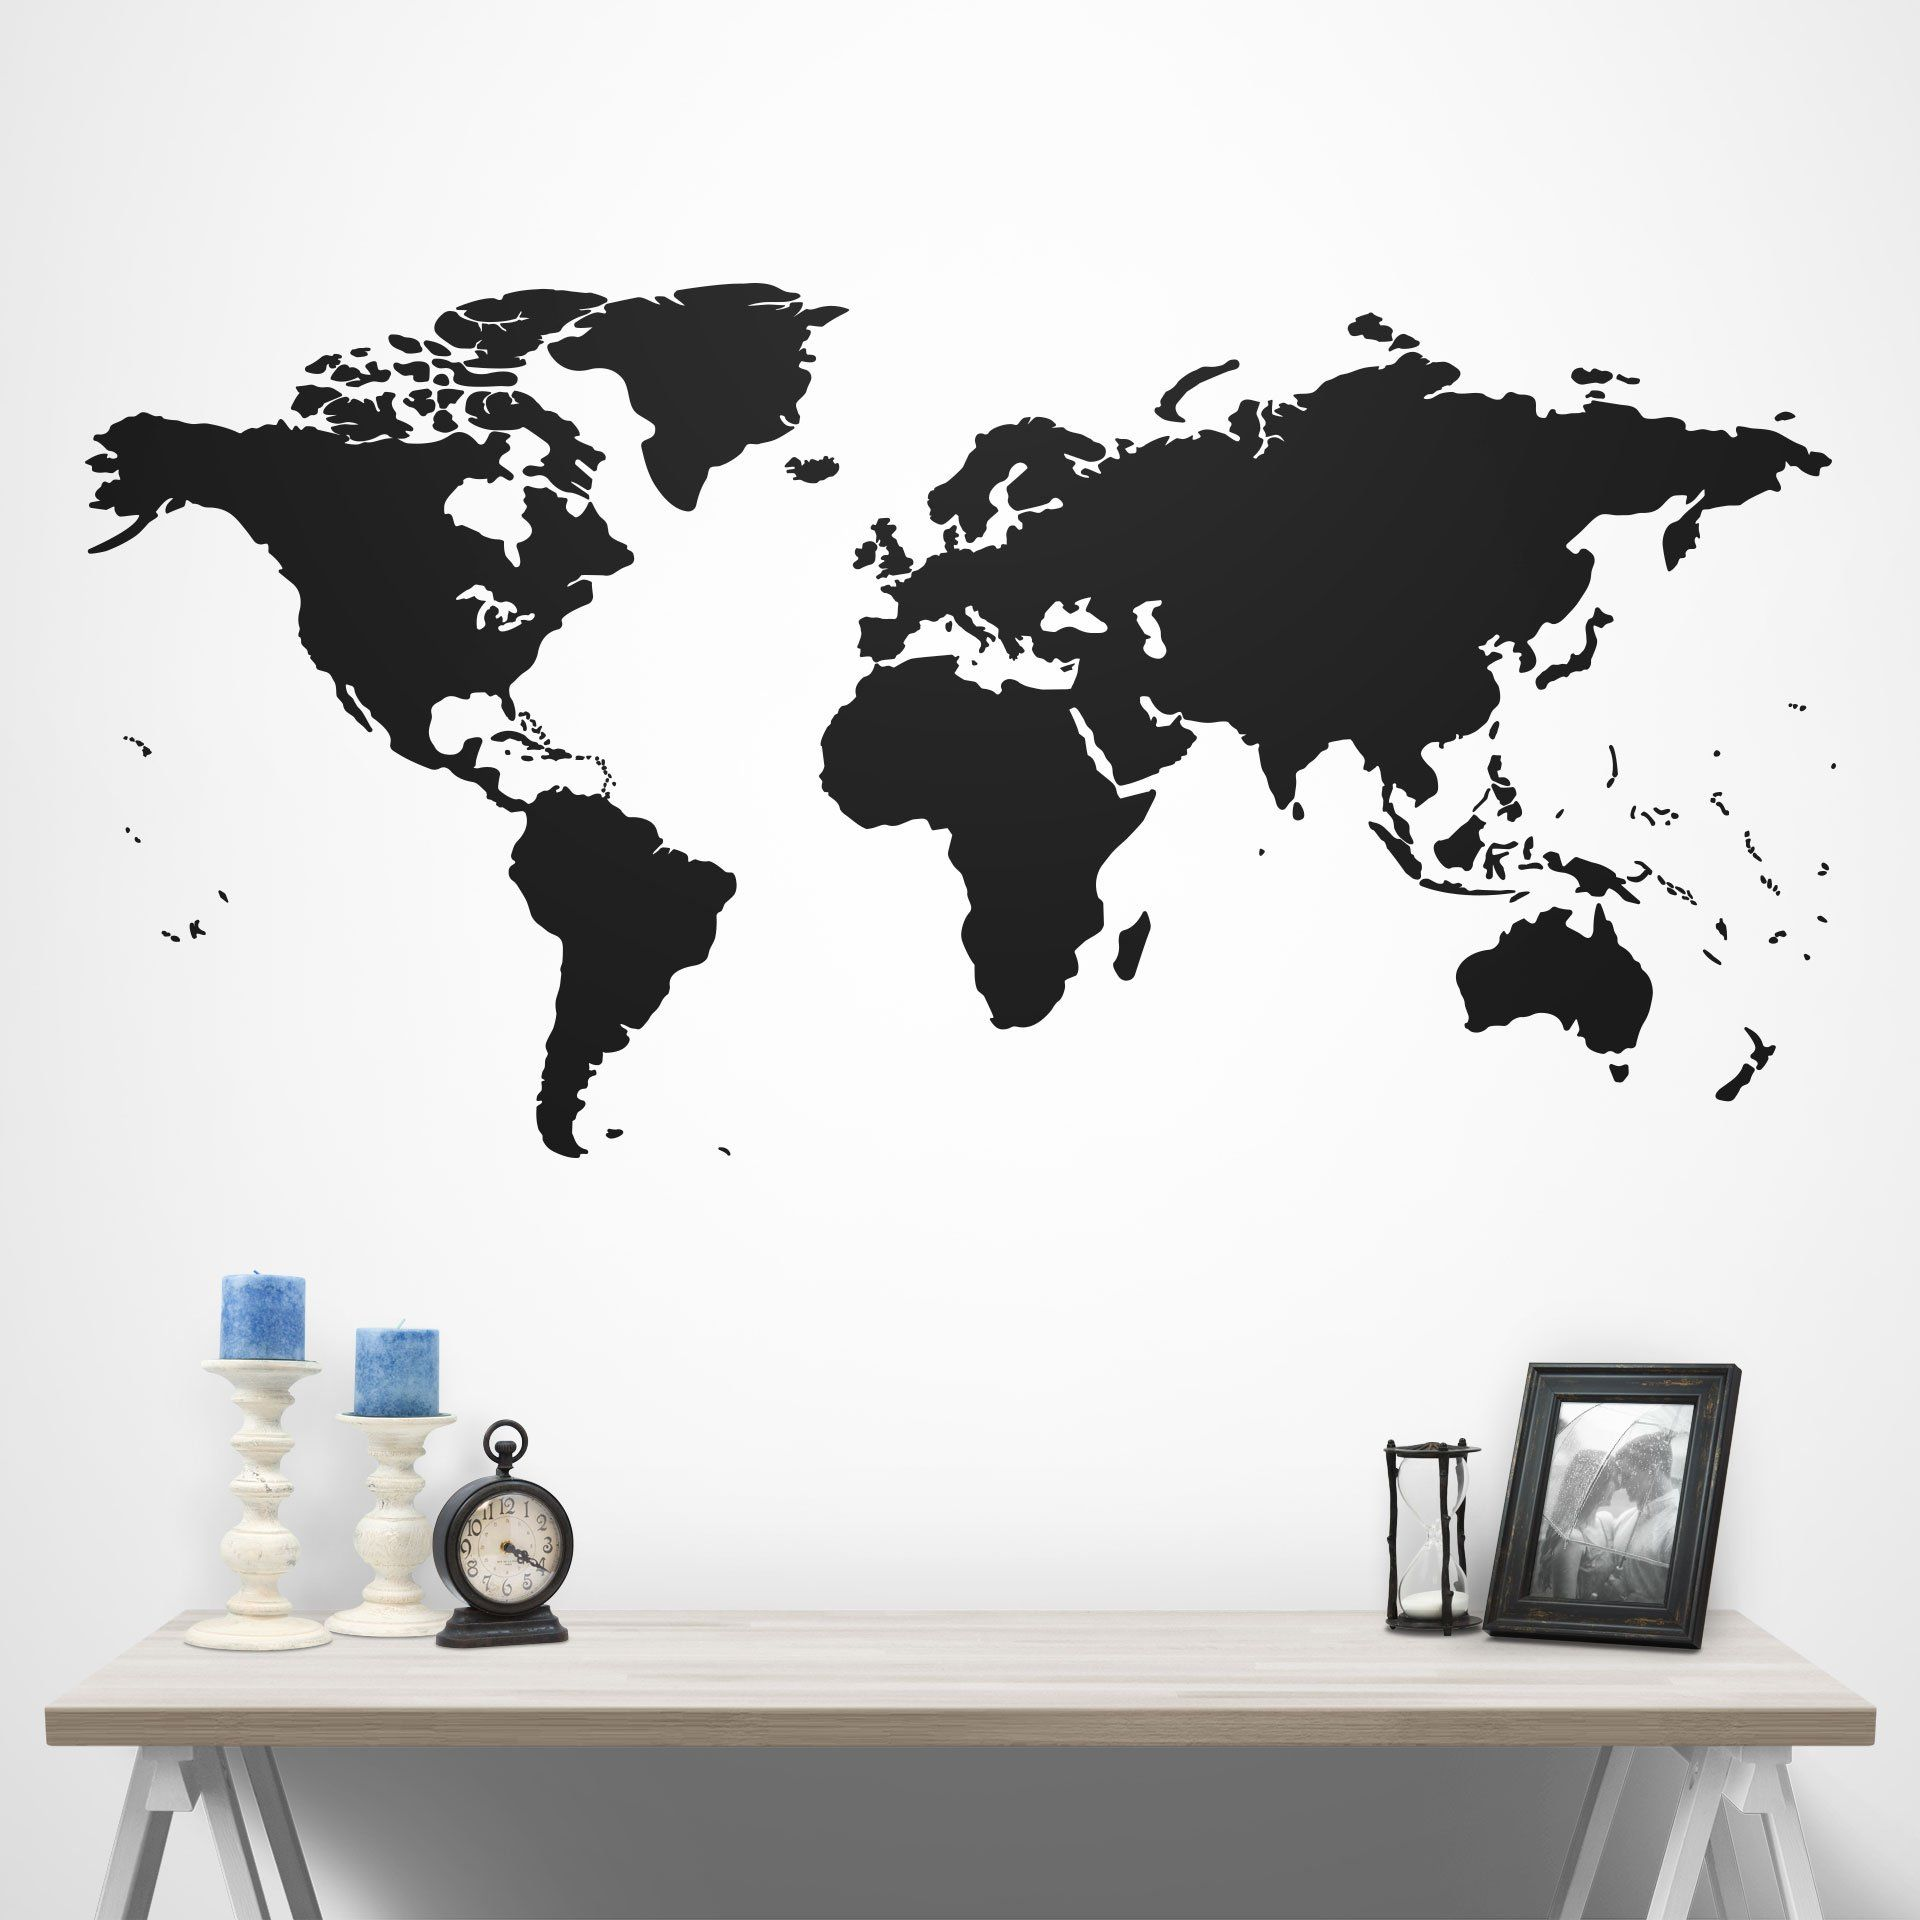 Map Of The World Decal.World Map Silhouette Vinyl Wall Decal In 2019 Conquest Maps